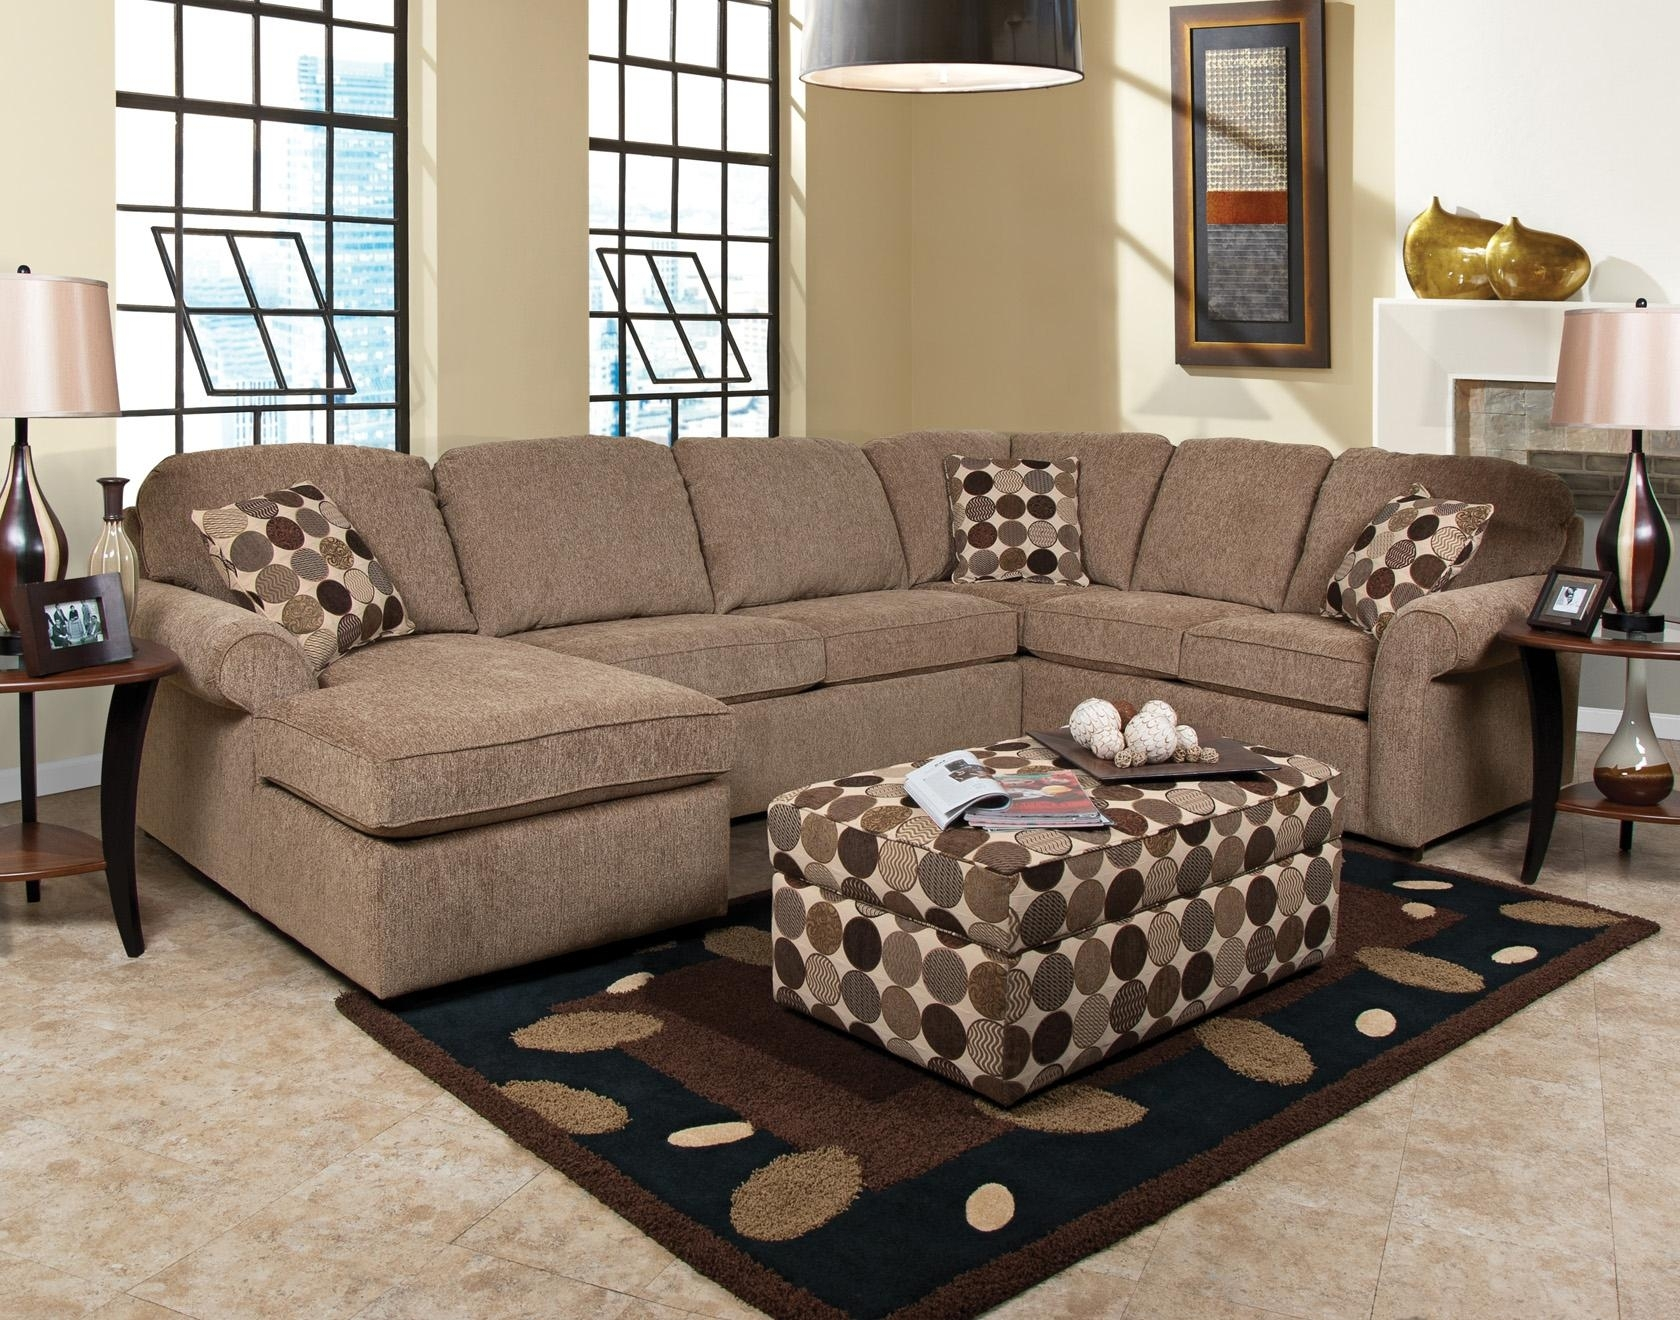 England Malibu 5 6 Seat (Right Side) Chaise Sectional Sofa Regarding England Sectional Sofas (View 1 of 10)